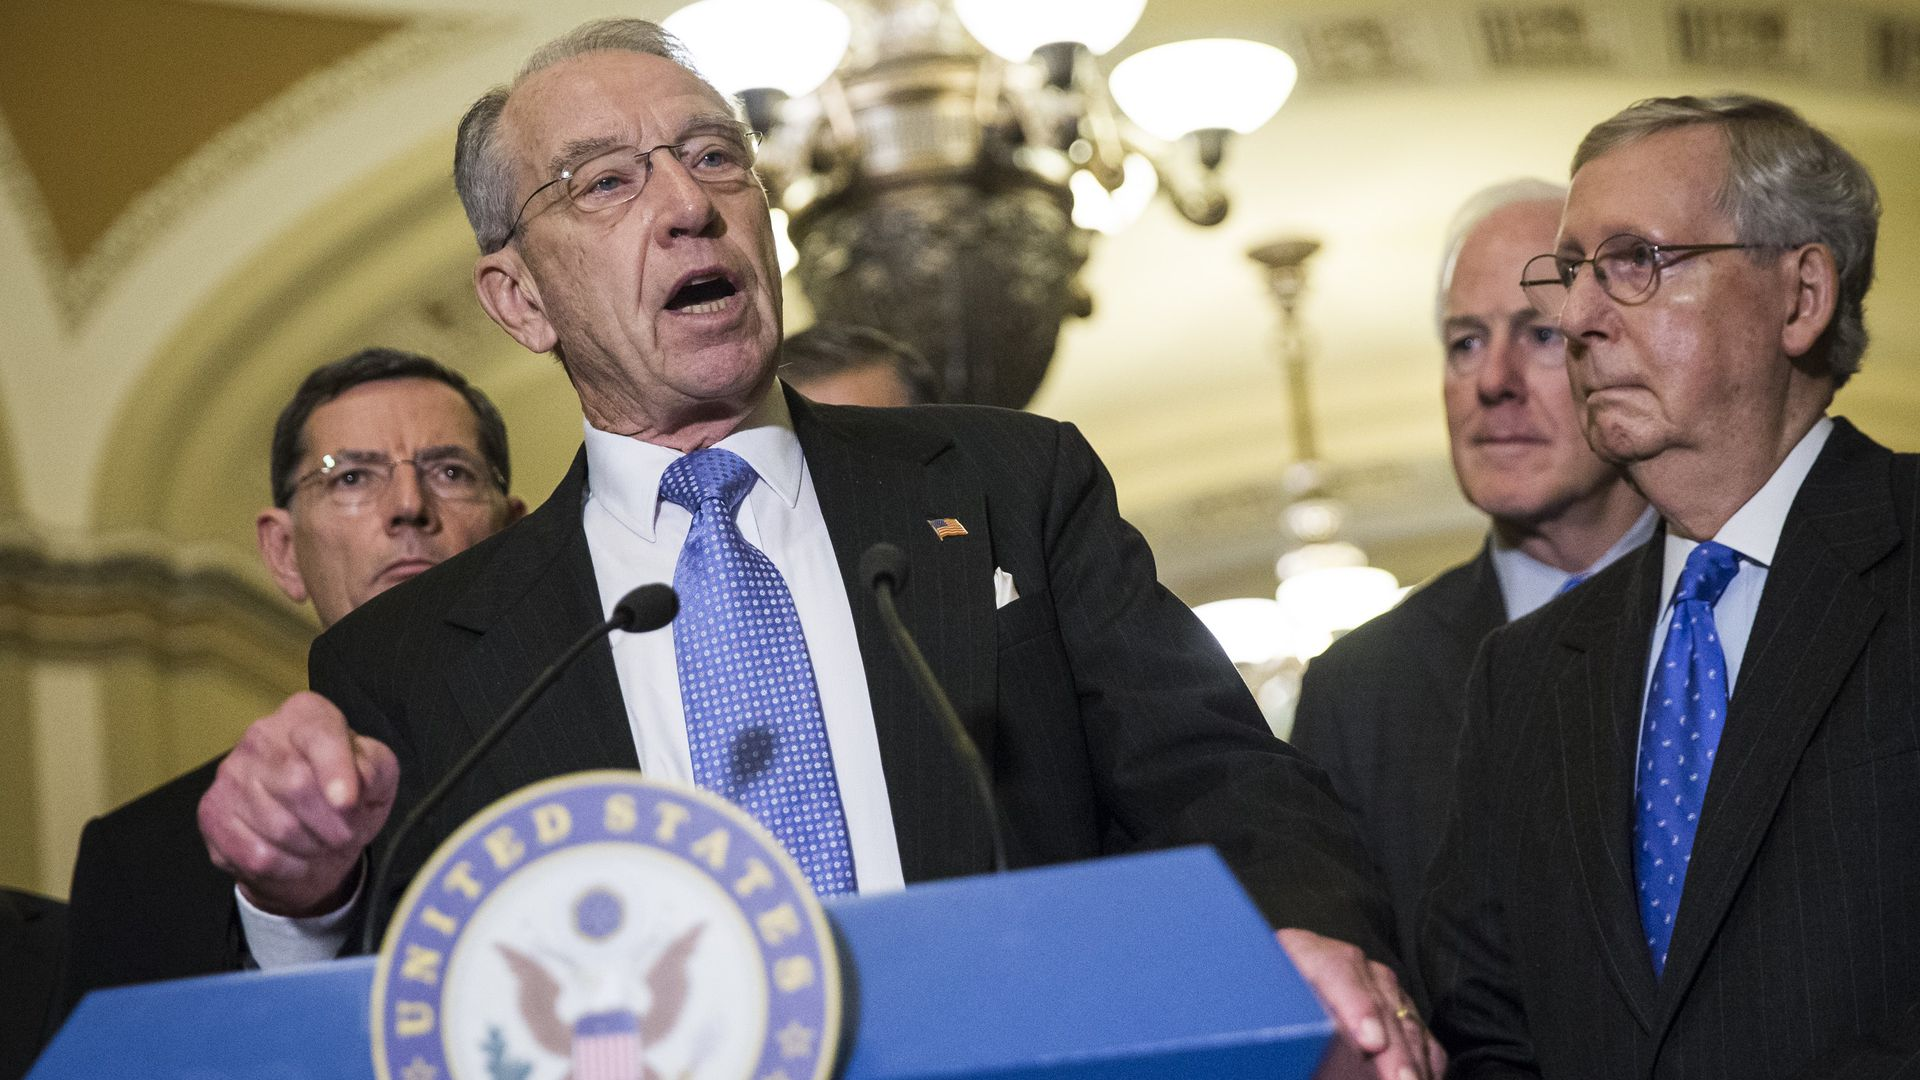 Senator Chuck Grassley (C), Chairman of the Senate Judiciary Committee. Photo: Samuel Corum/Anadolu Agency/Getty Images